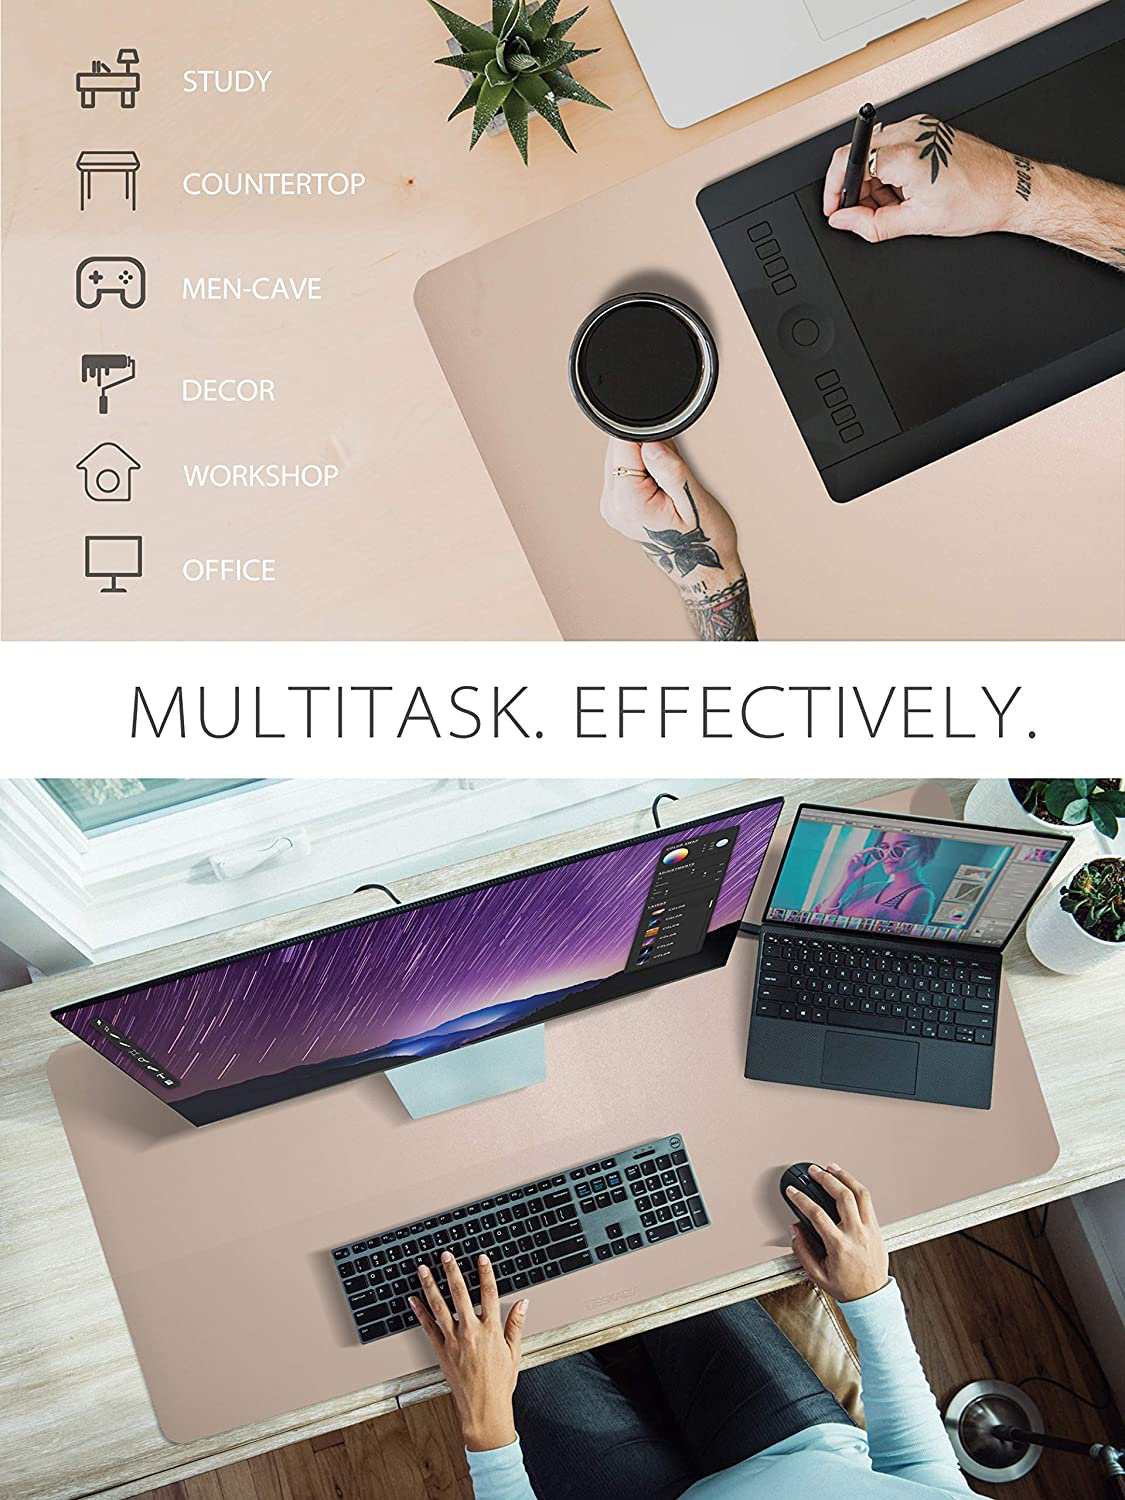 Deskadia Double Sided Two Tone Vegan Leather Desk Mat Protector Pad, Waterproof Writing Mouse Pad Table Blotter Cover for Home Office Study Gaming Kids Decor (Graphite/Eggshell,36x17x0.08in)